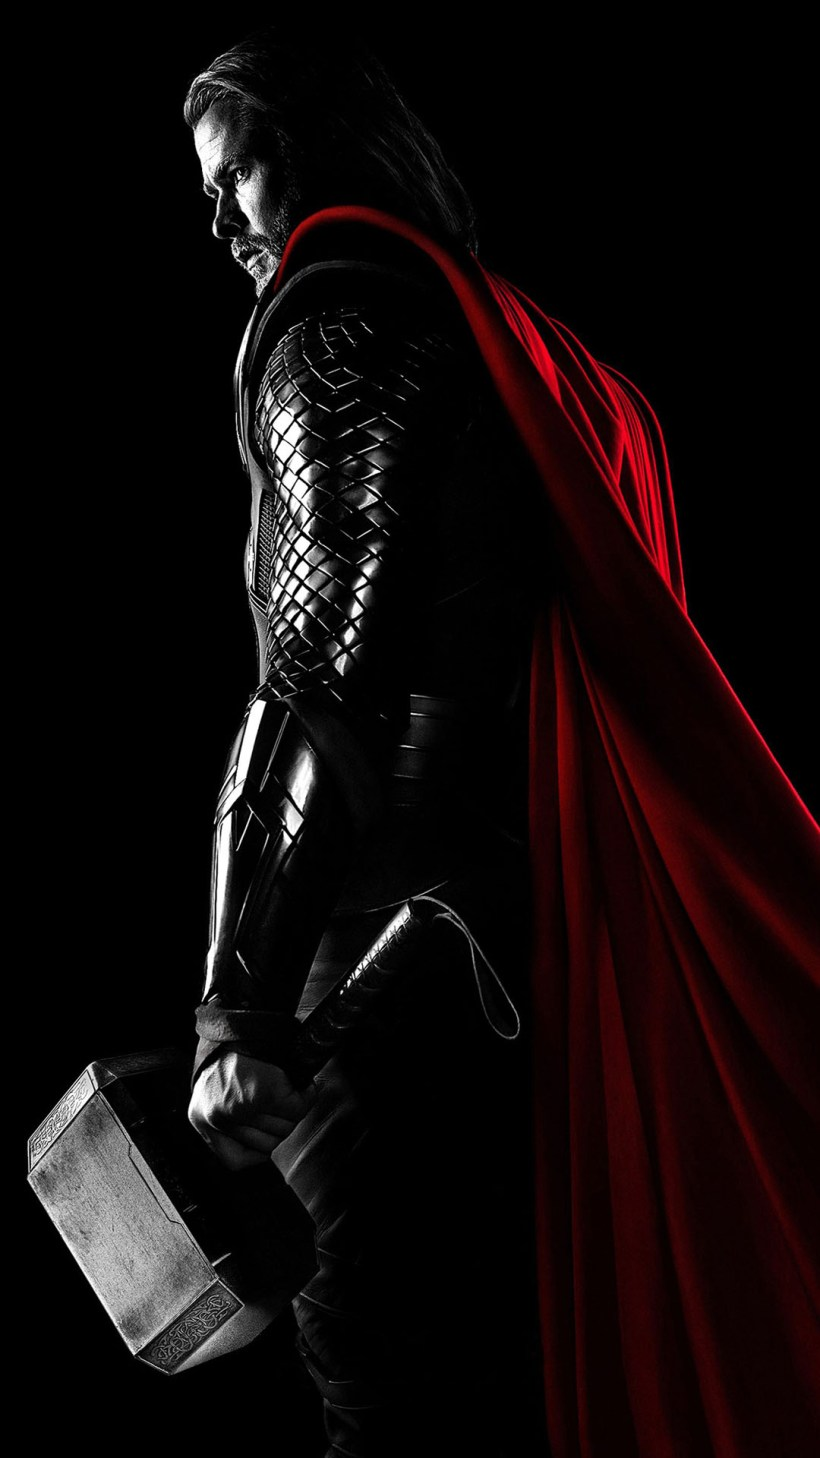 thor wallpaper iphone hd wallpaper images